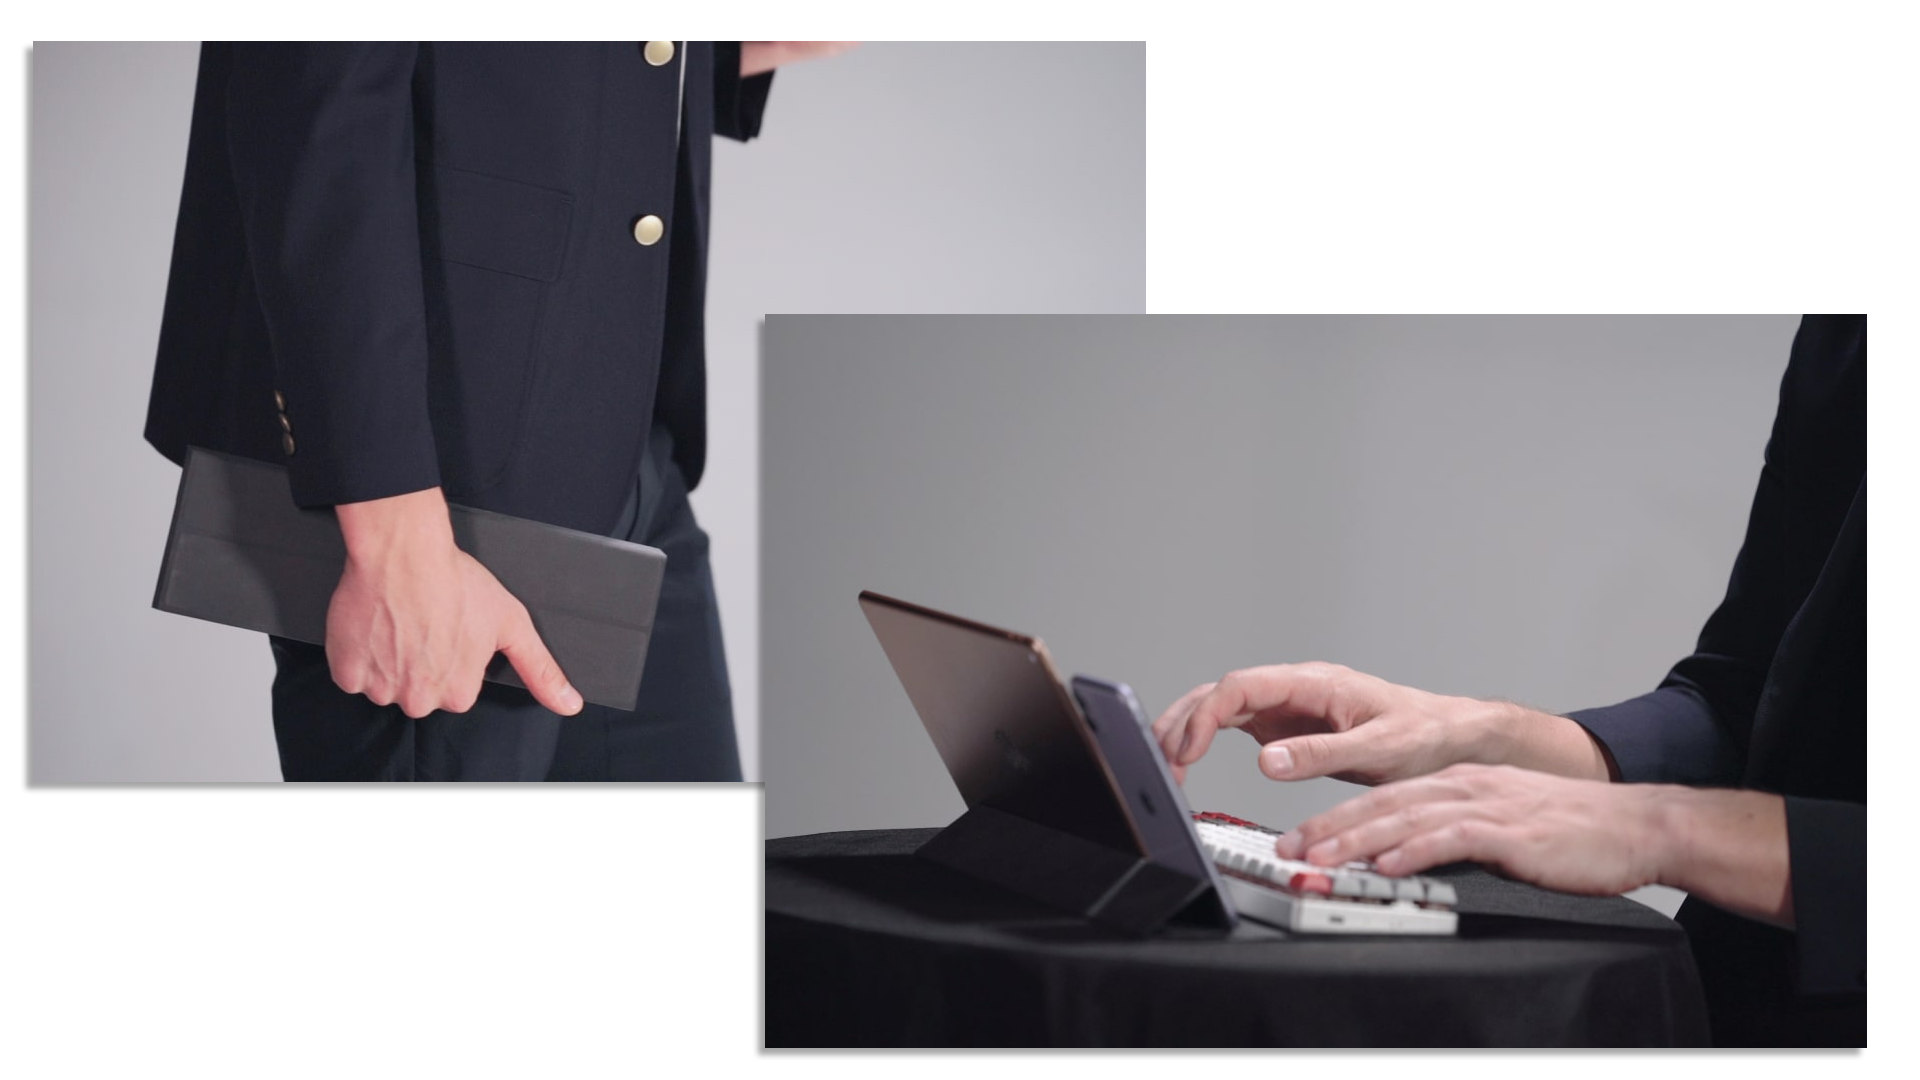 The Epomaker NT68 mechanical keyboard's integrated carrying case